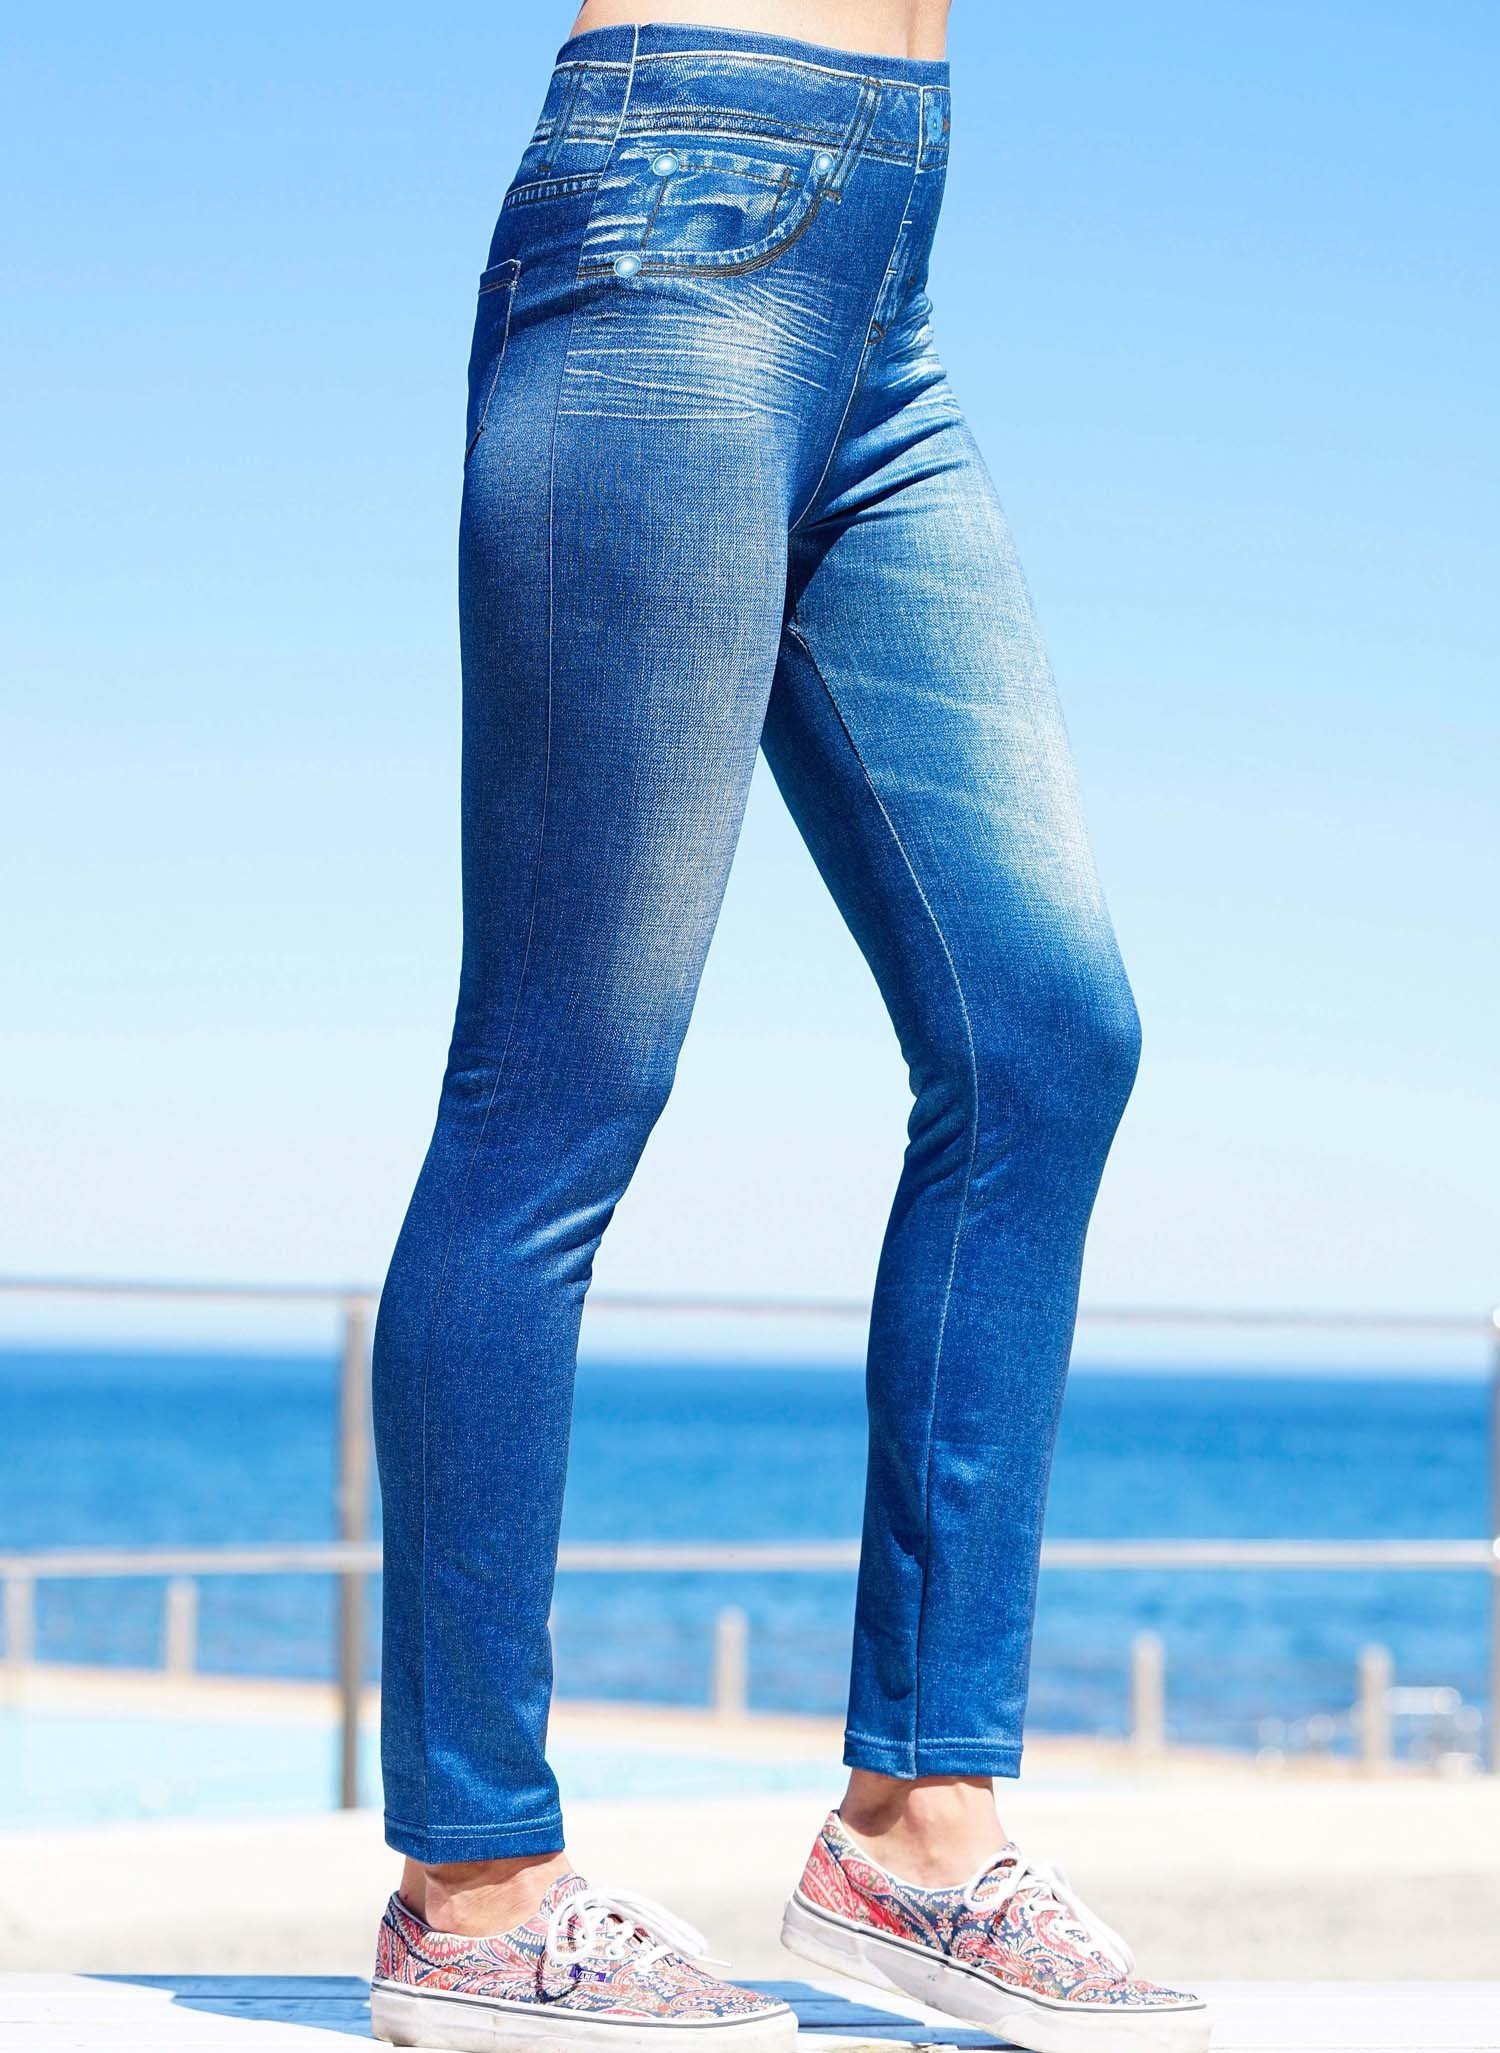 D-Leggings,Print Blue-Denim S/M 050 - 1 - Ronja.ch